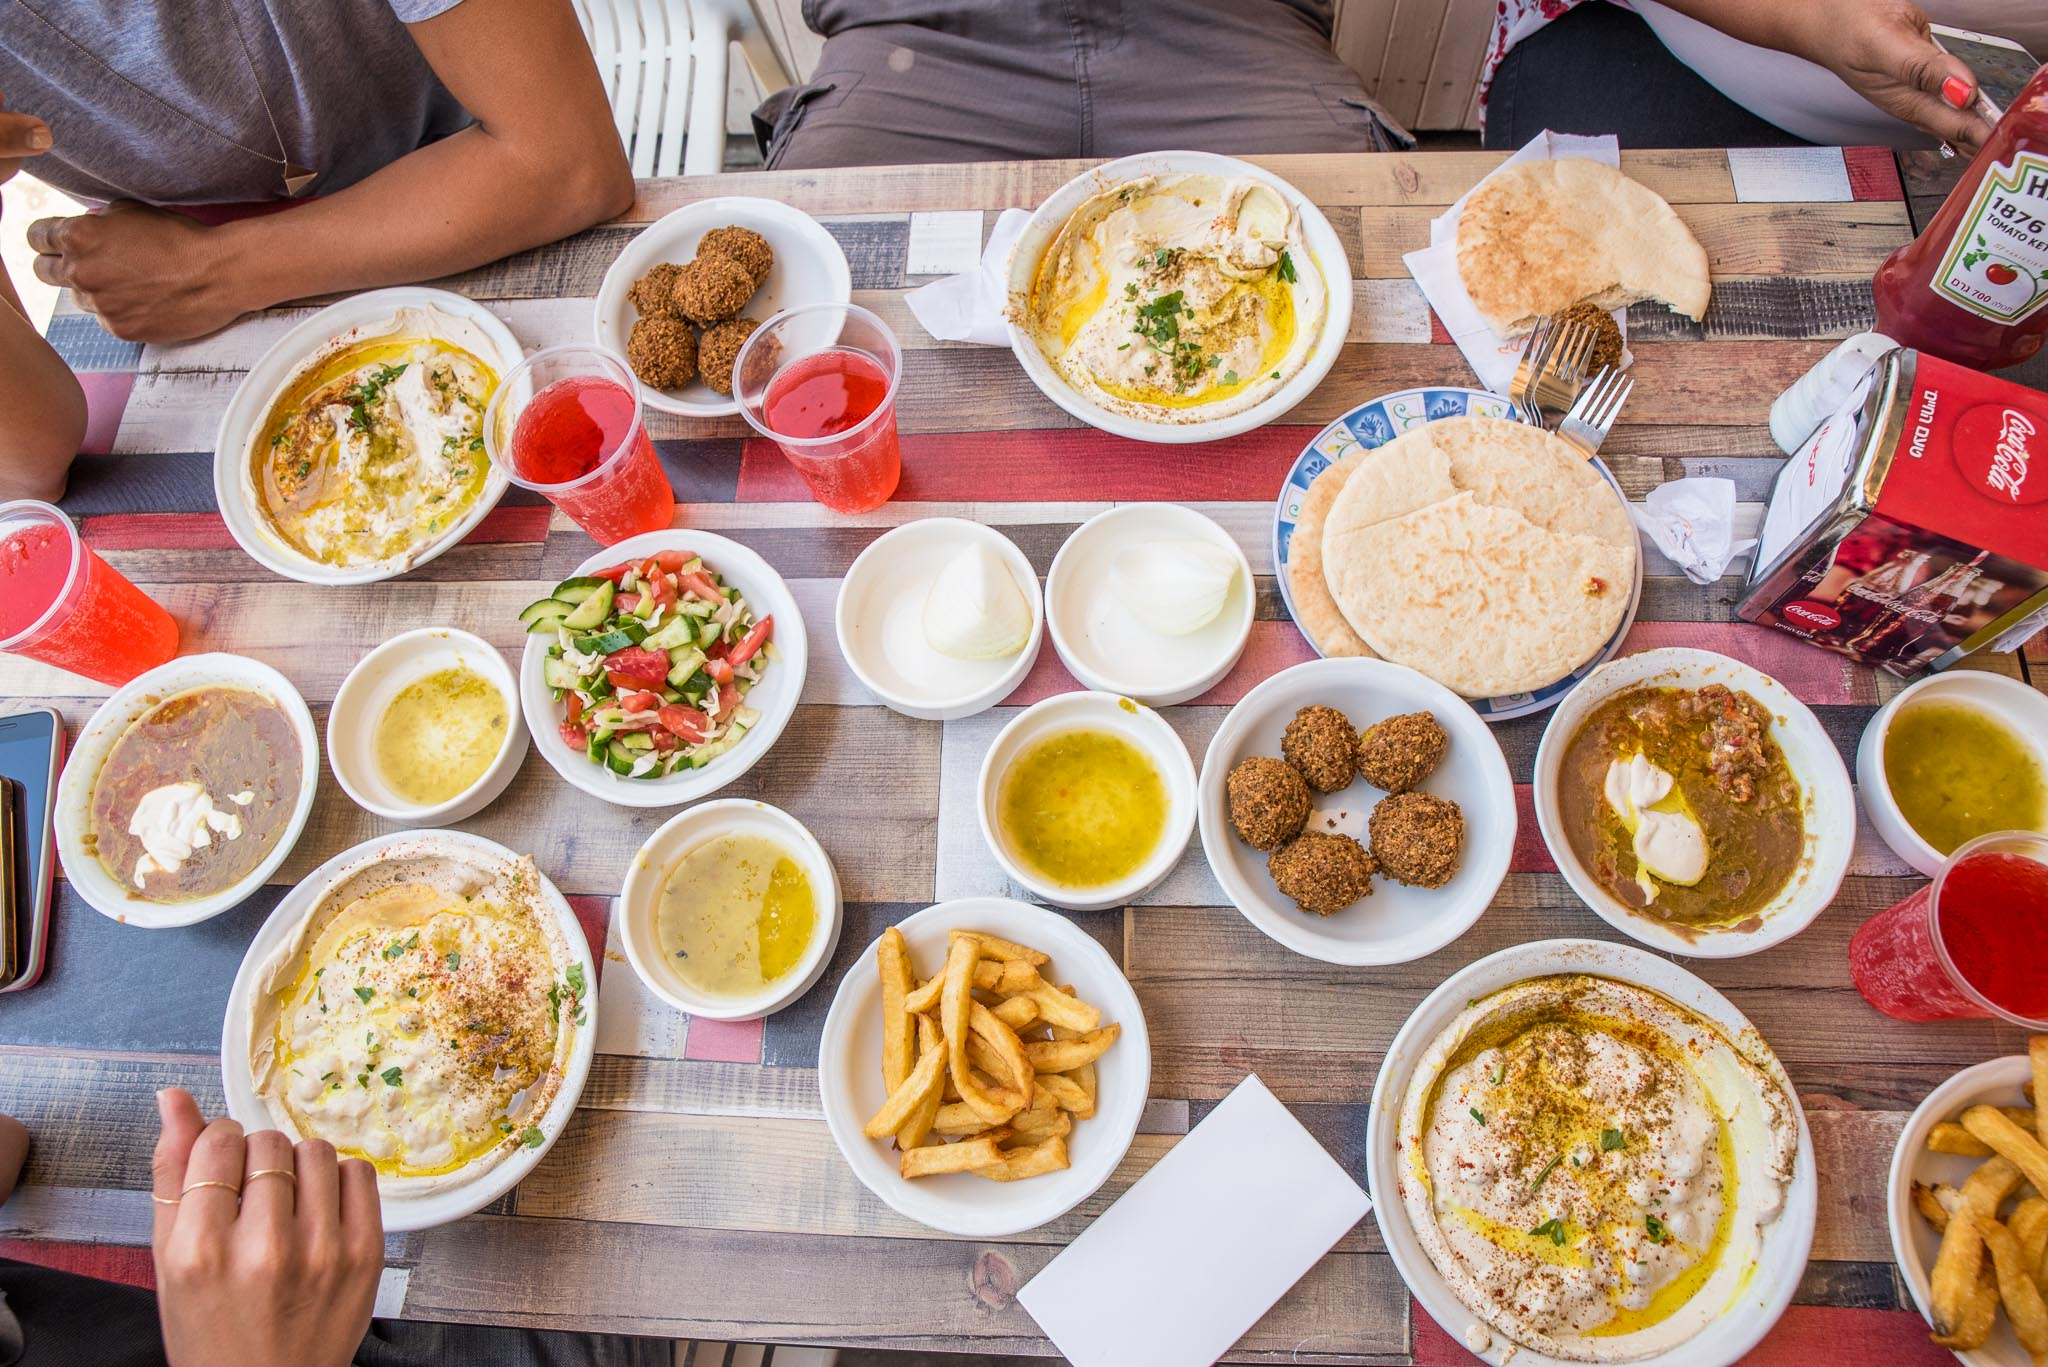 Food in Israel